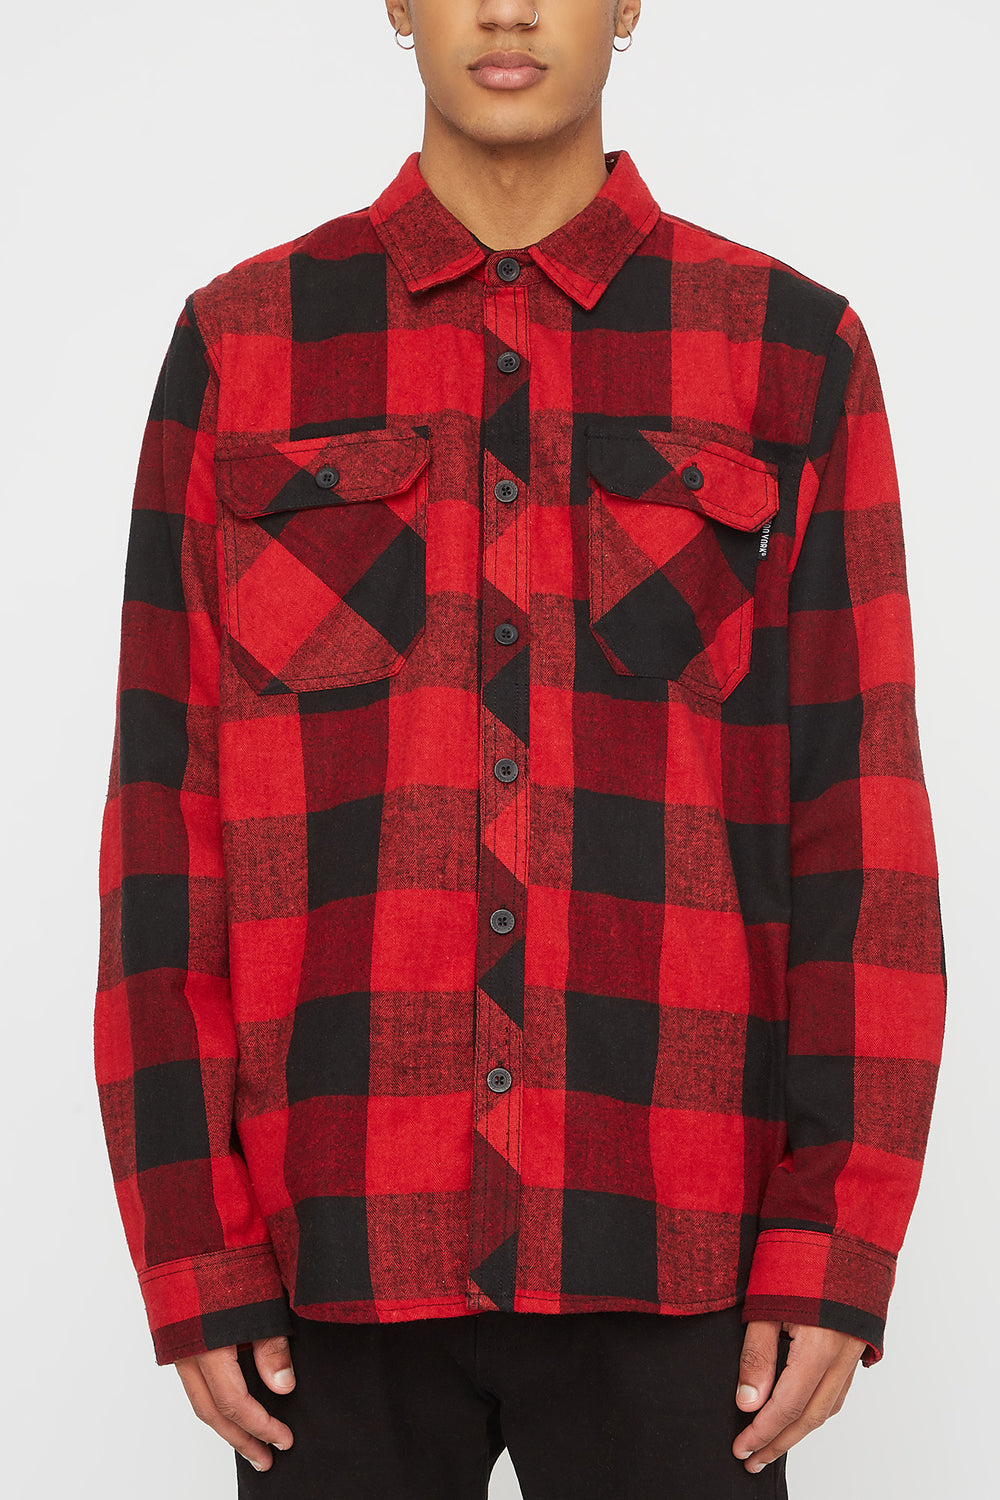 Zoo York Mens Hooded Flannel Shirt Red